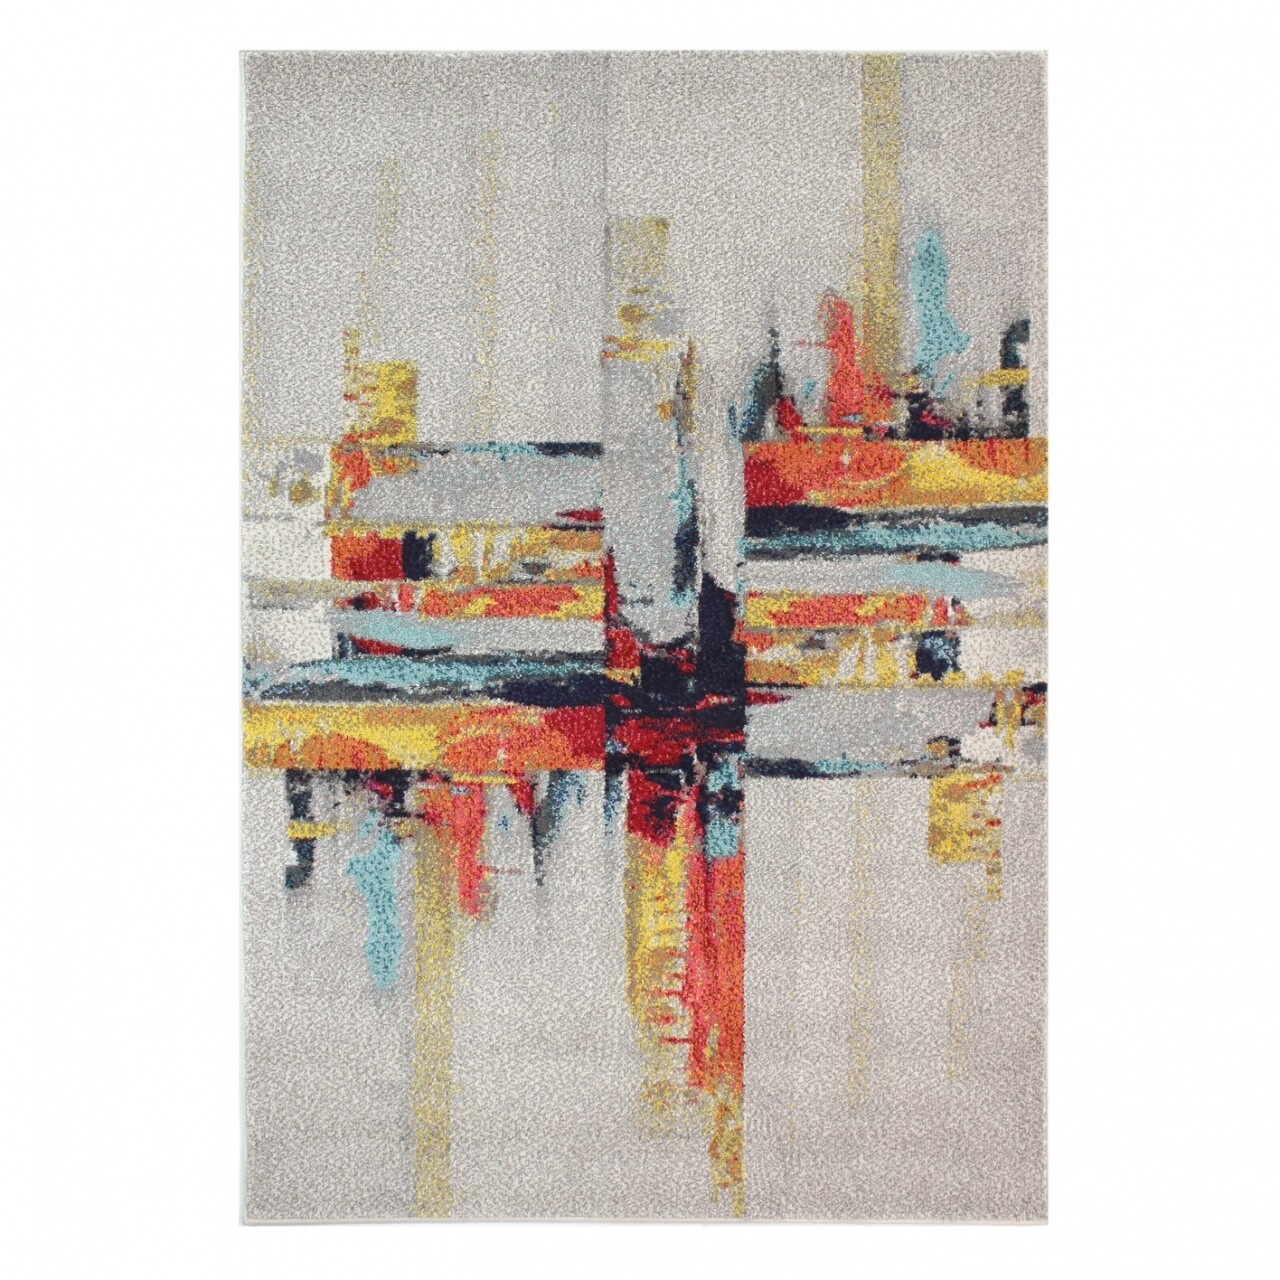 Covor Splash Multi, Flair Rugs, 120 x 170 cm, 100% polipropilena, multicolor